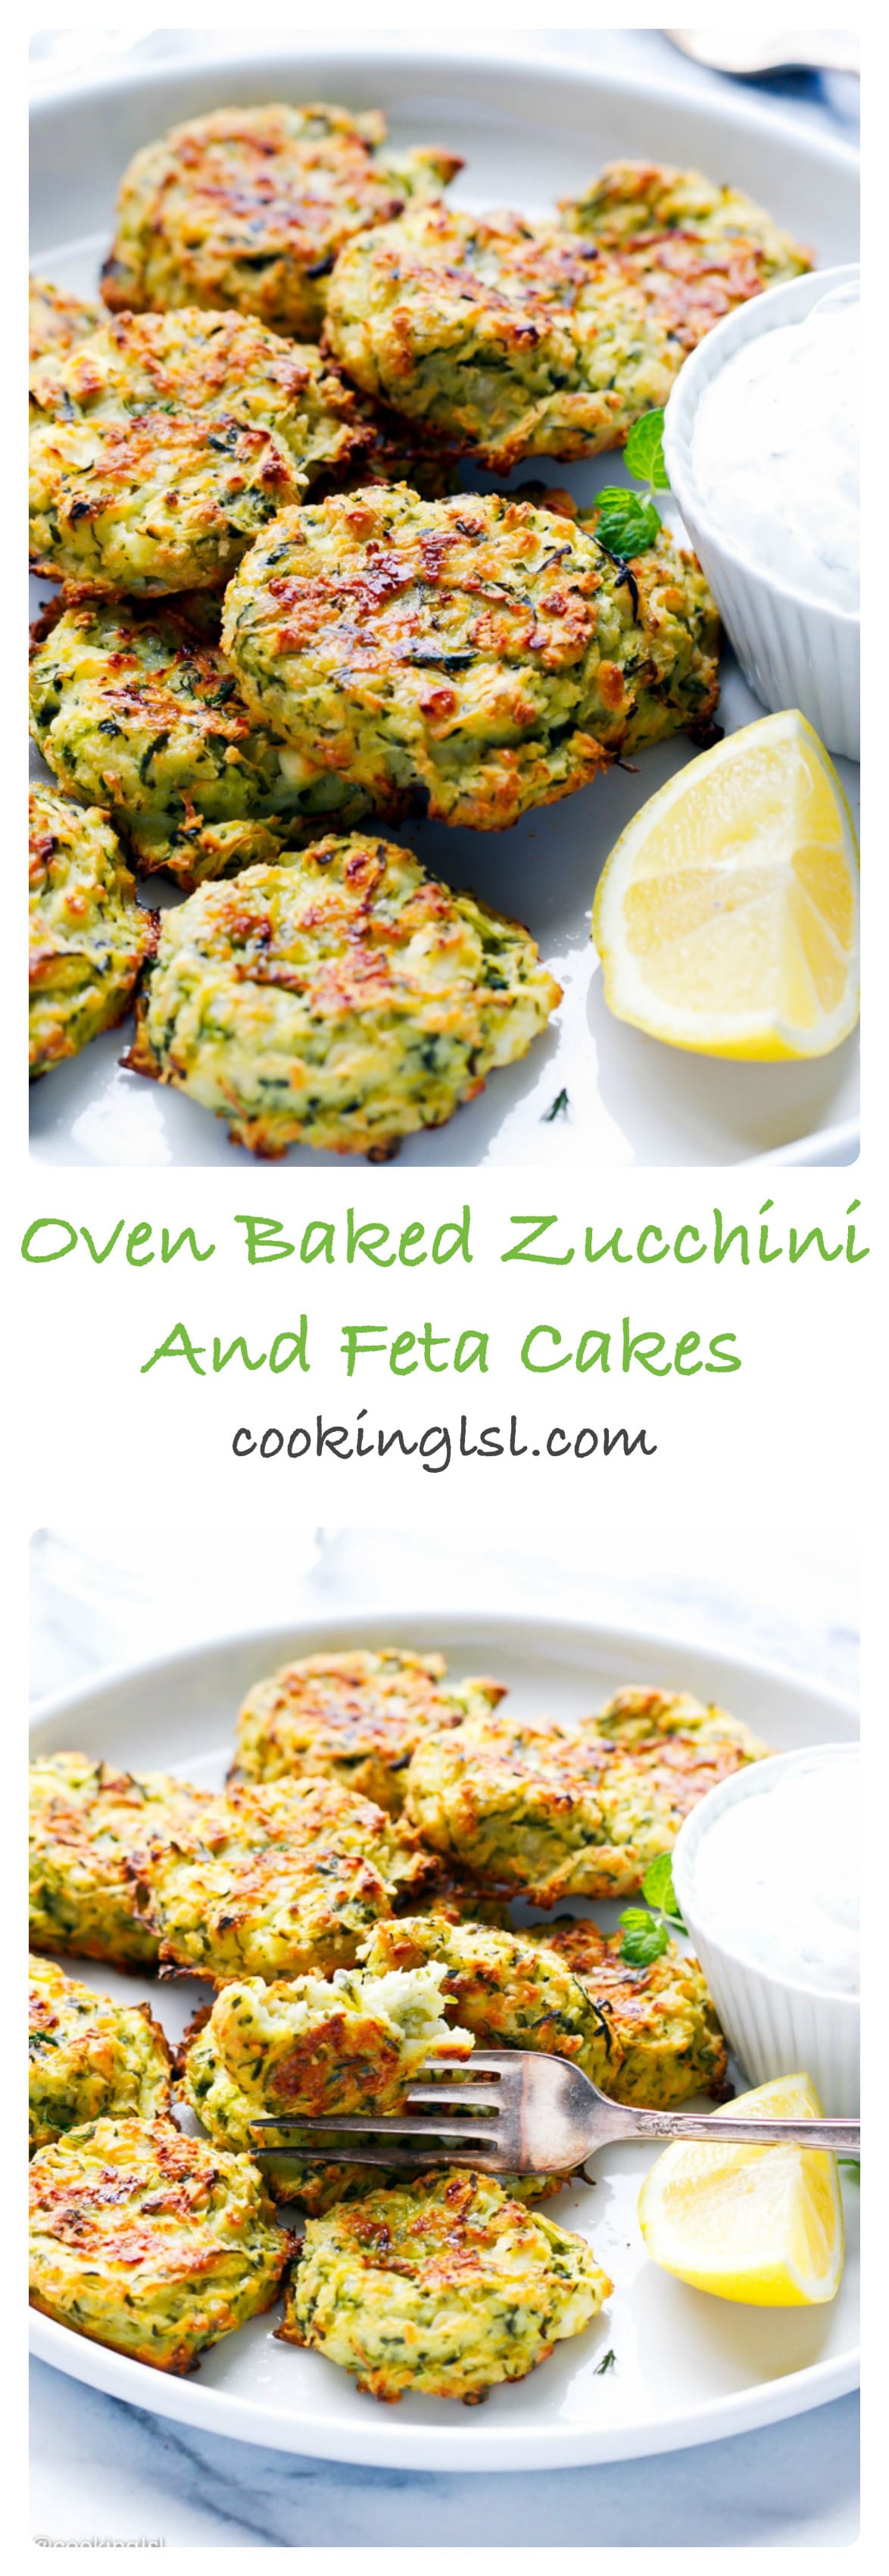 Baked zucchini and feta fritters on a plate